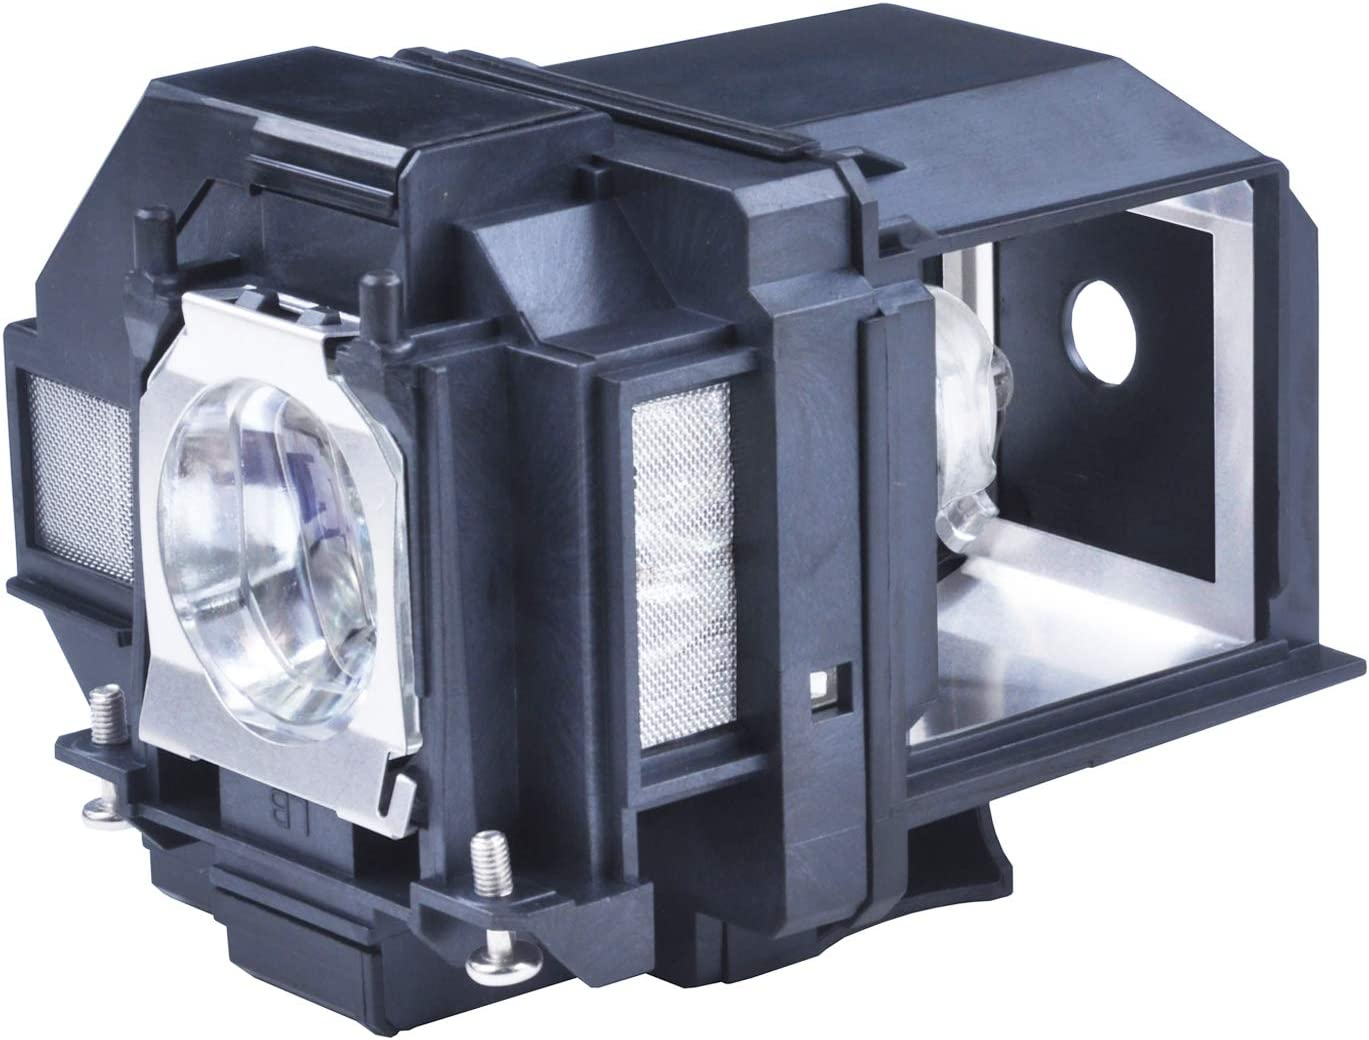 for ELPLP96 V13H010L96 EPSON Vs350 Vs355 Home Cinema 2100 Home Cinema 2150 1060 660 760hd VS250 VS350 VS355 EX9210 Compatible Projector lamp with Housing by SW-LAMP